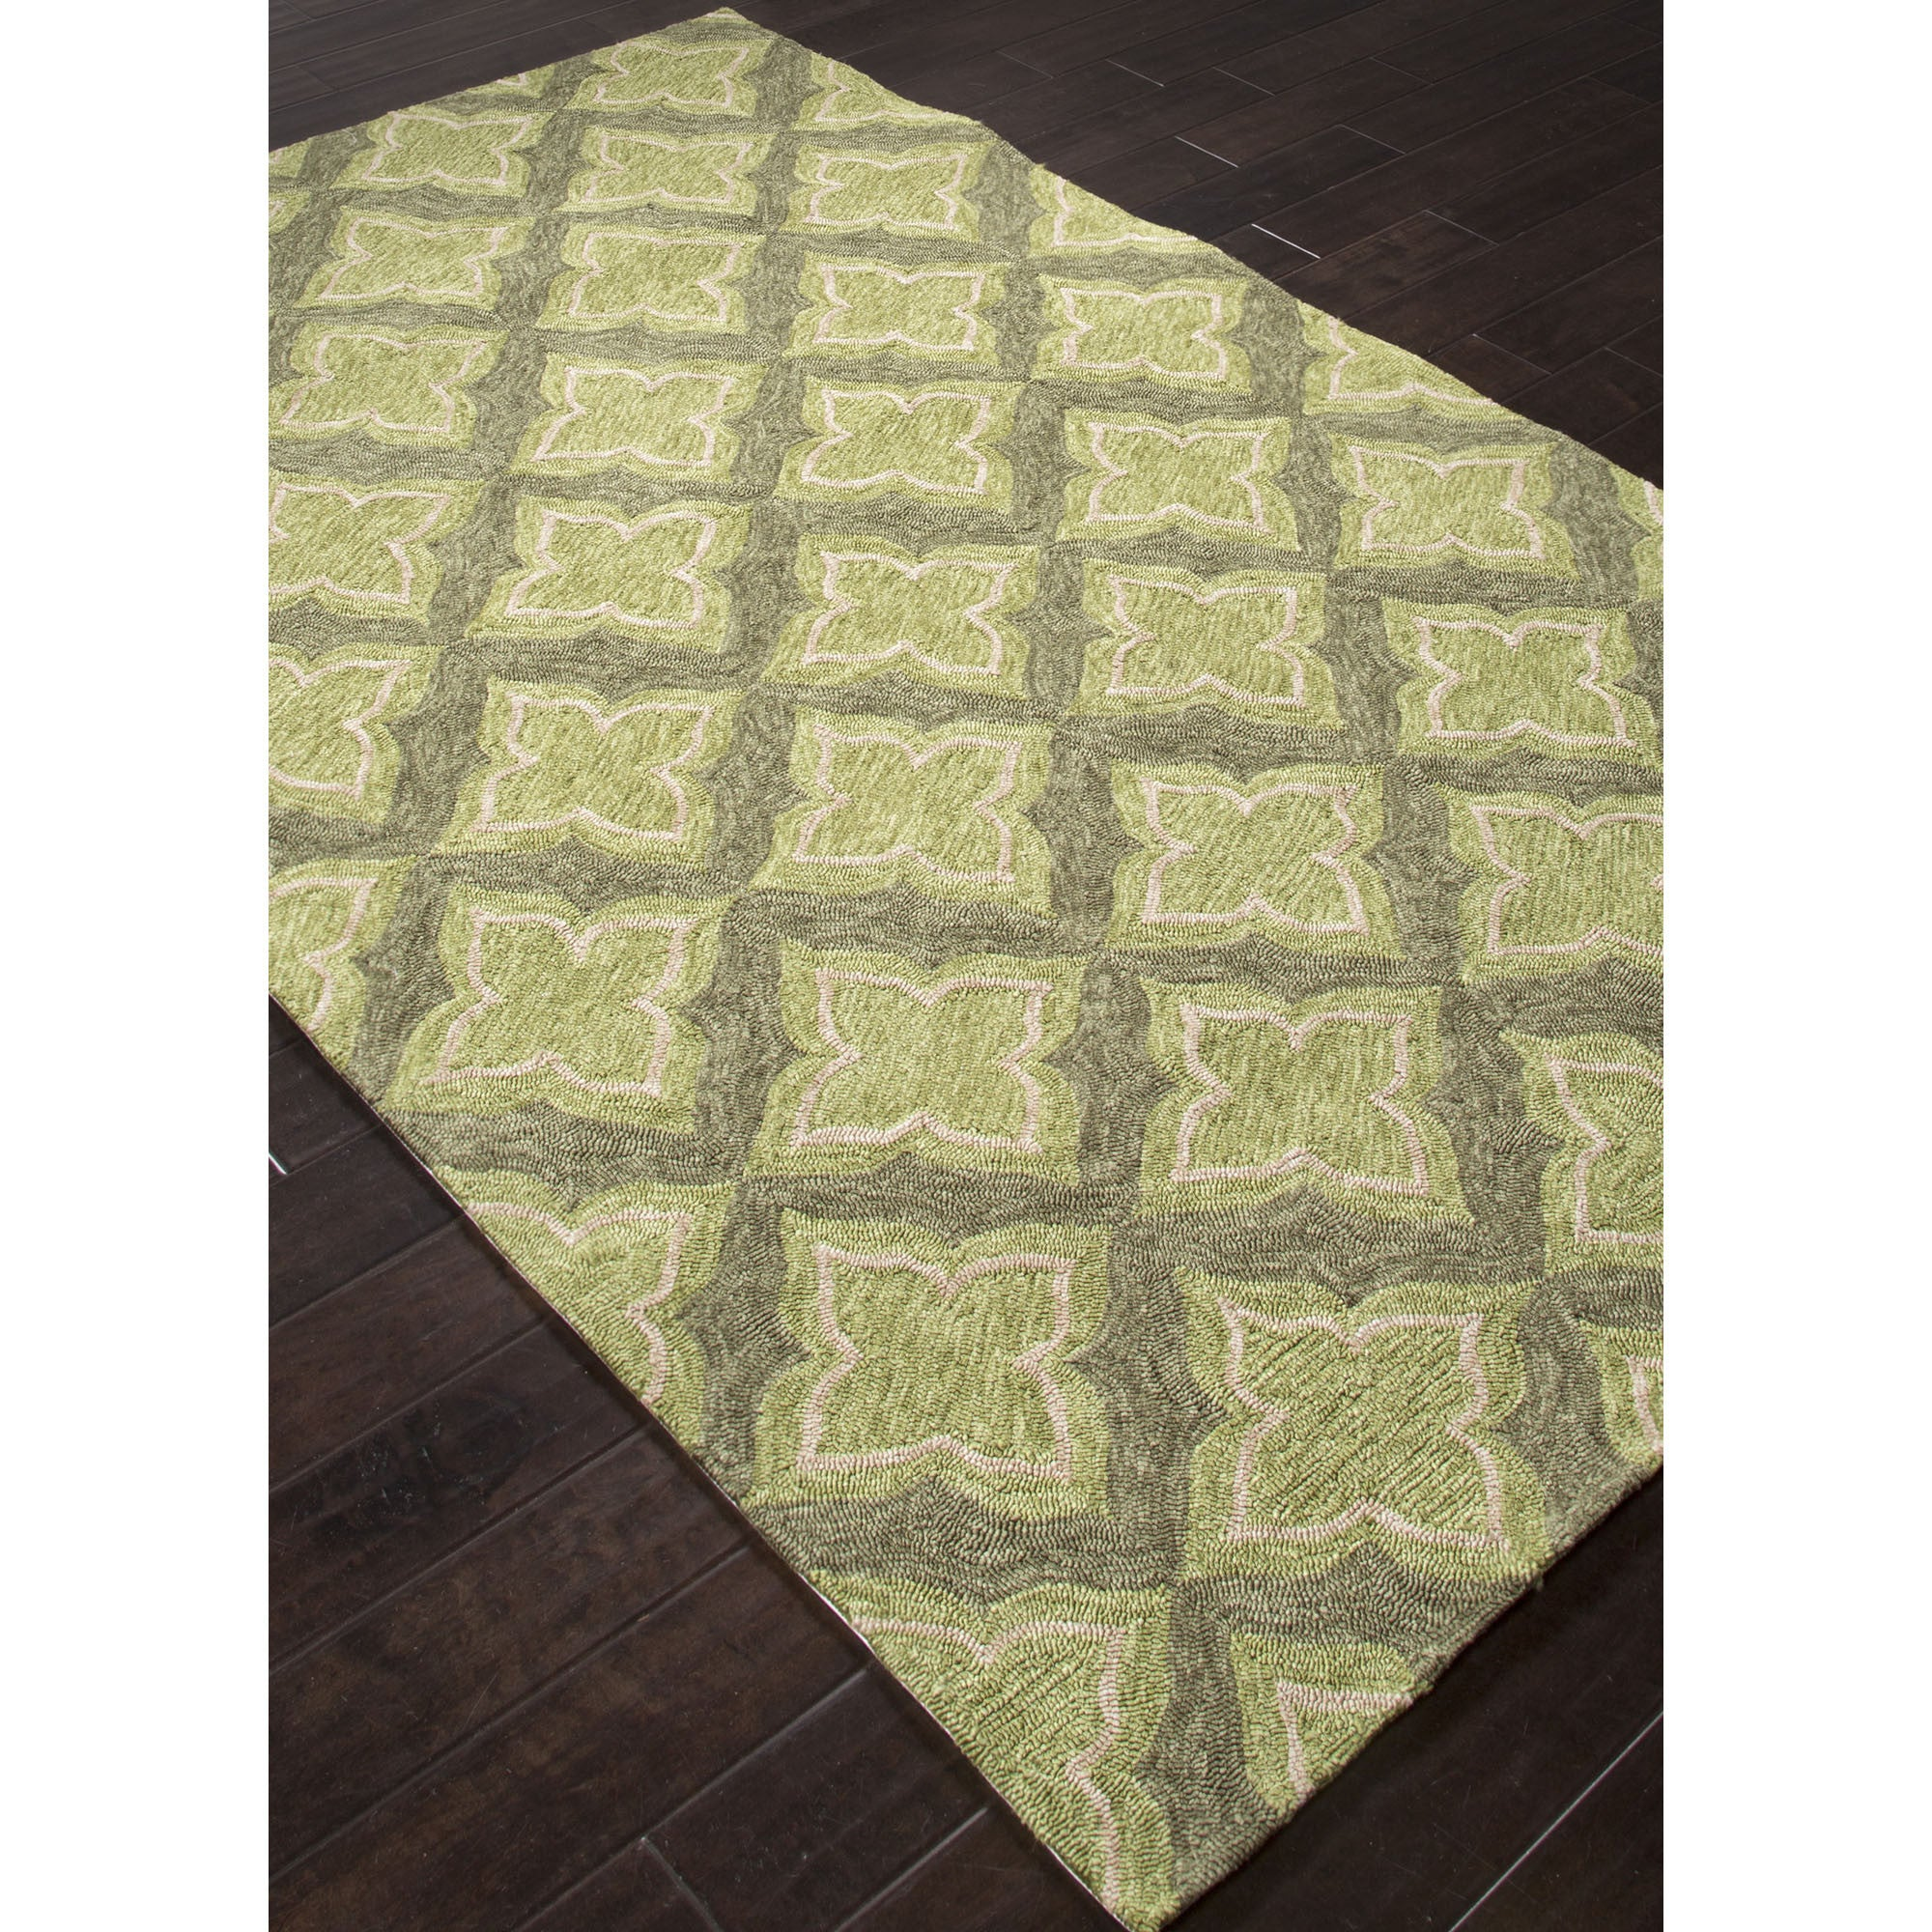 Jaipur Rugs IndoorOutdoor Moroccan Pattern Green/Taupe